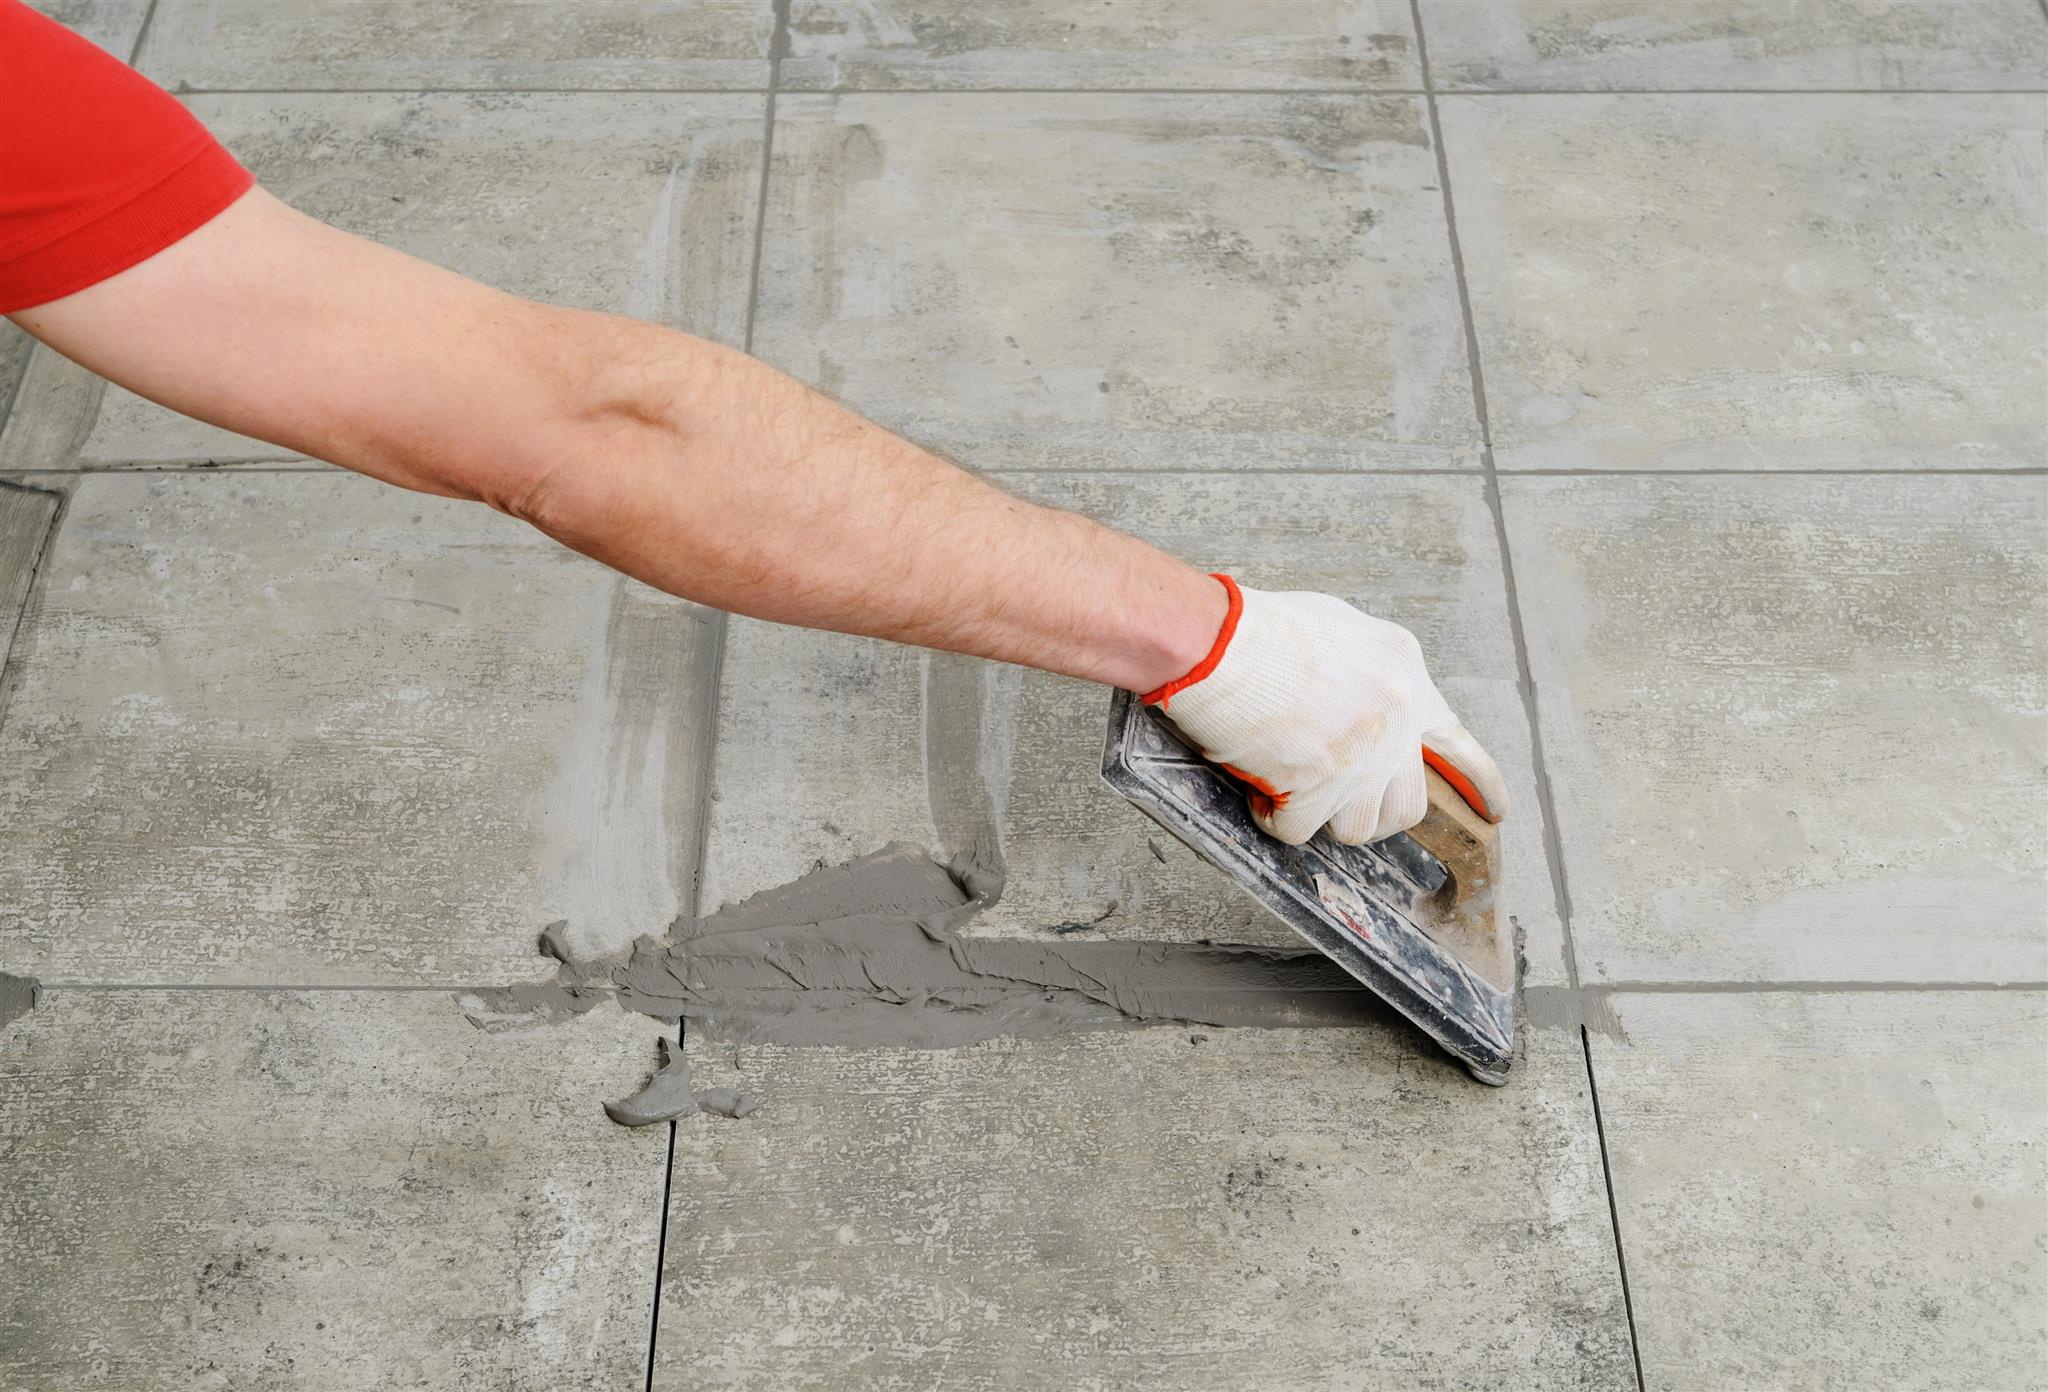 Epoxy grouting / epoxy